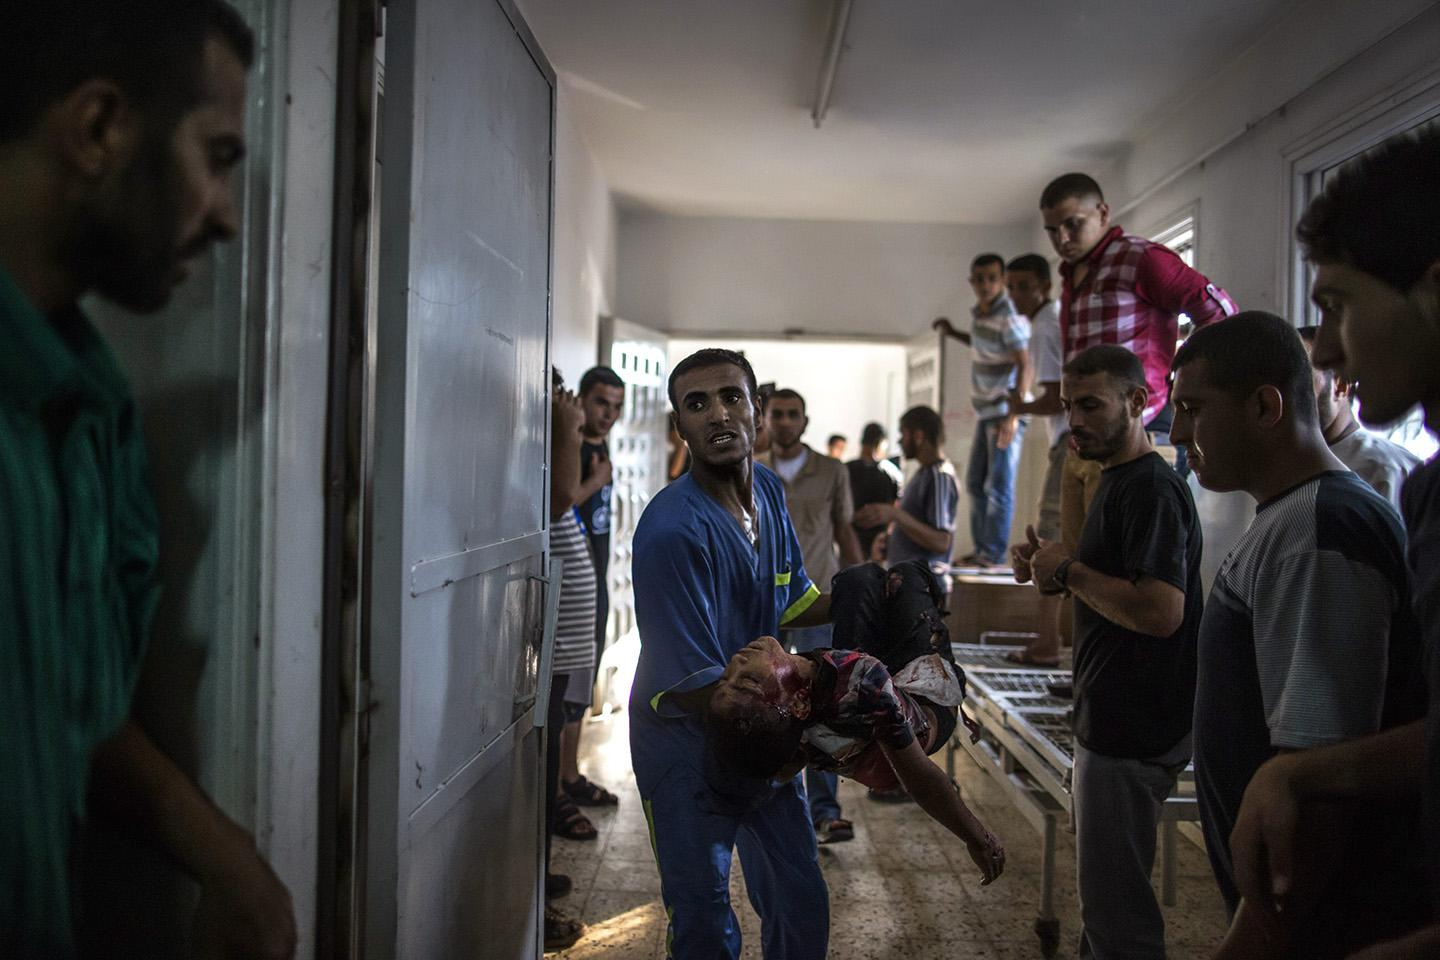 death of at least seven Palestinian children on air strikes launched by the Israeli military.